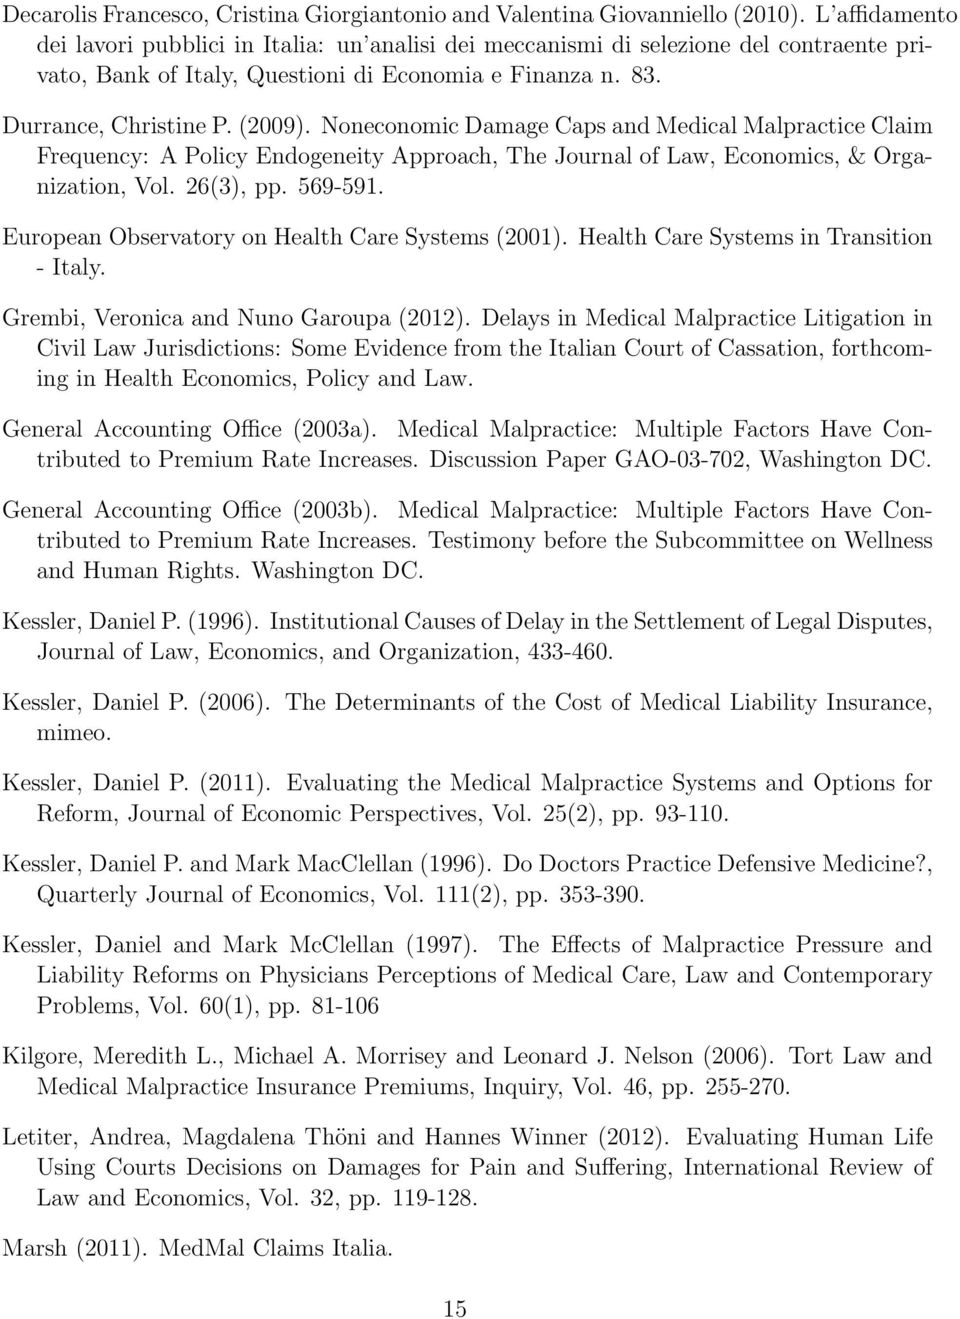 Noneconomic Damage Caps and Medical Malpractice Claim Frequency: A Policy Endogeneity Approach, The Journal of Law, Economics, & Organization, Vol. 26(3), pp. 569-591.